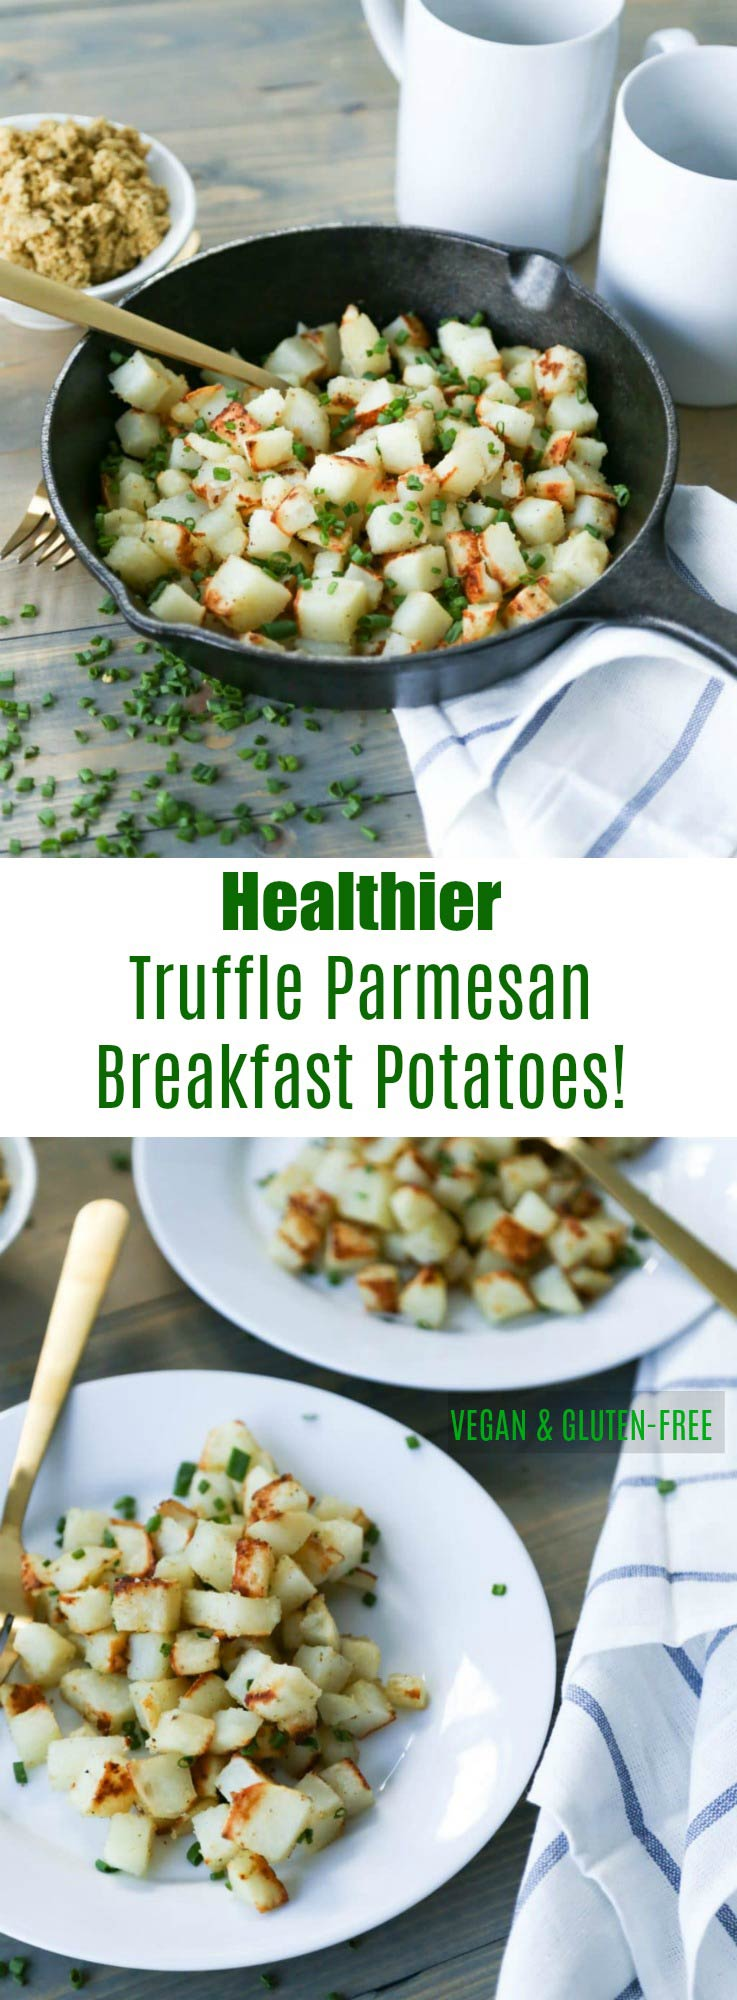 Healthier Truffle Parmesan Roasted Breakfast Potatoes! Minimal oil and delicious flavor. Vegan and Gluten-Free!